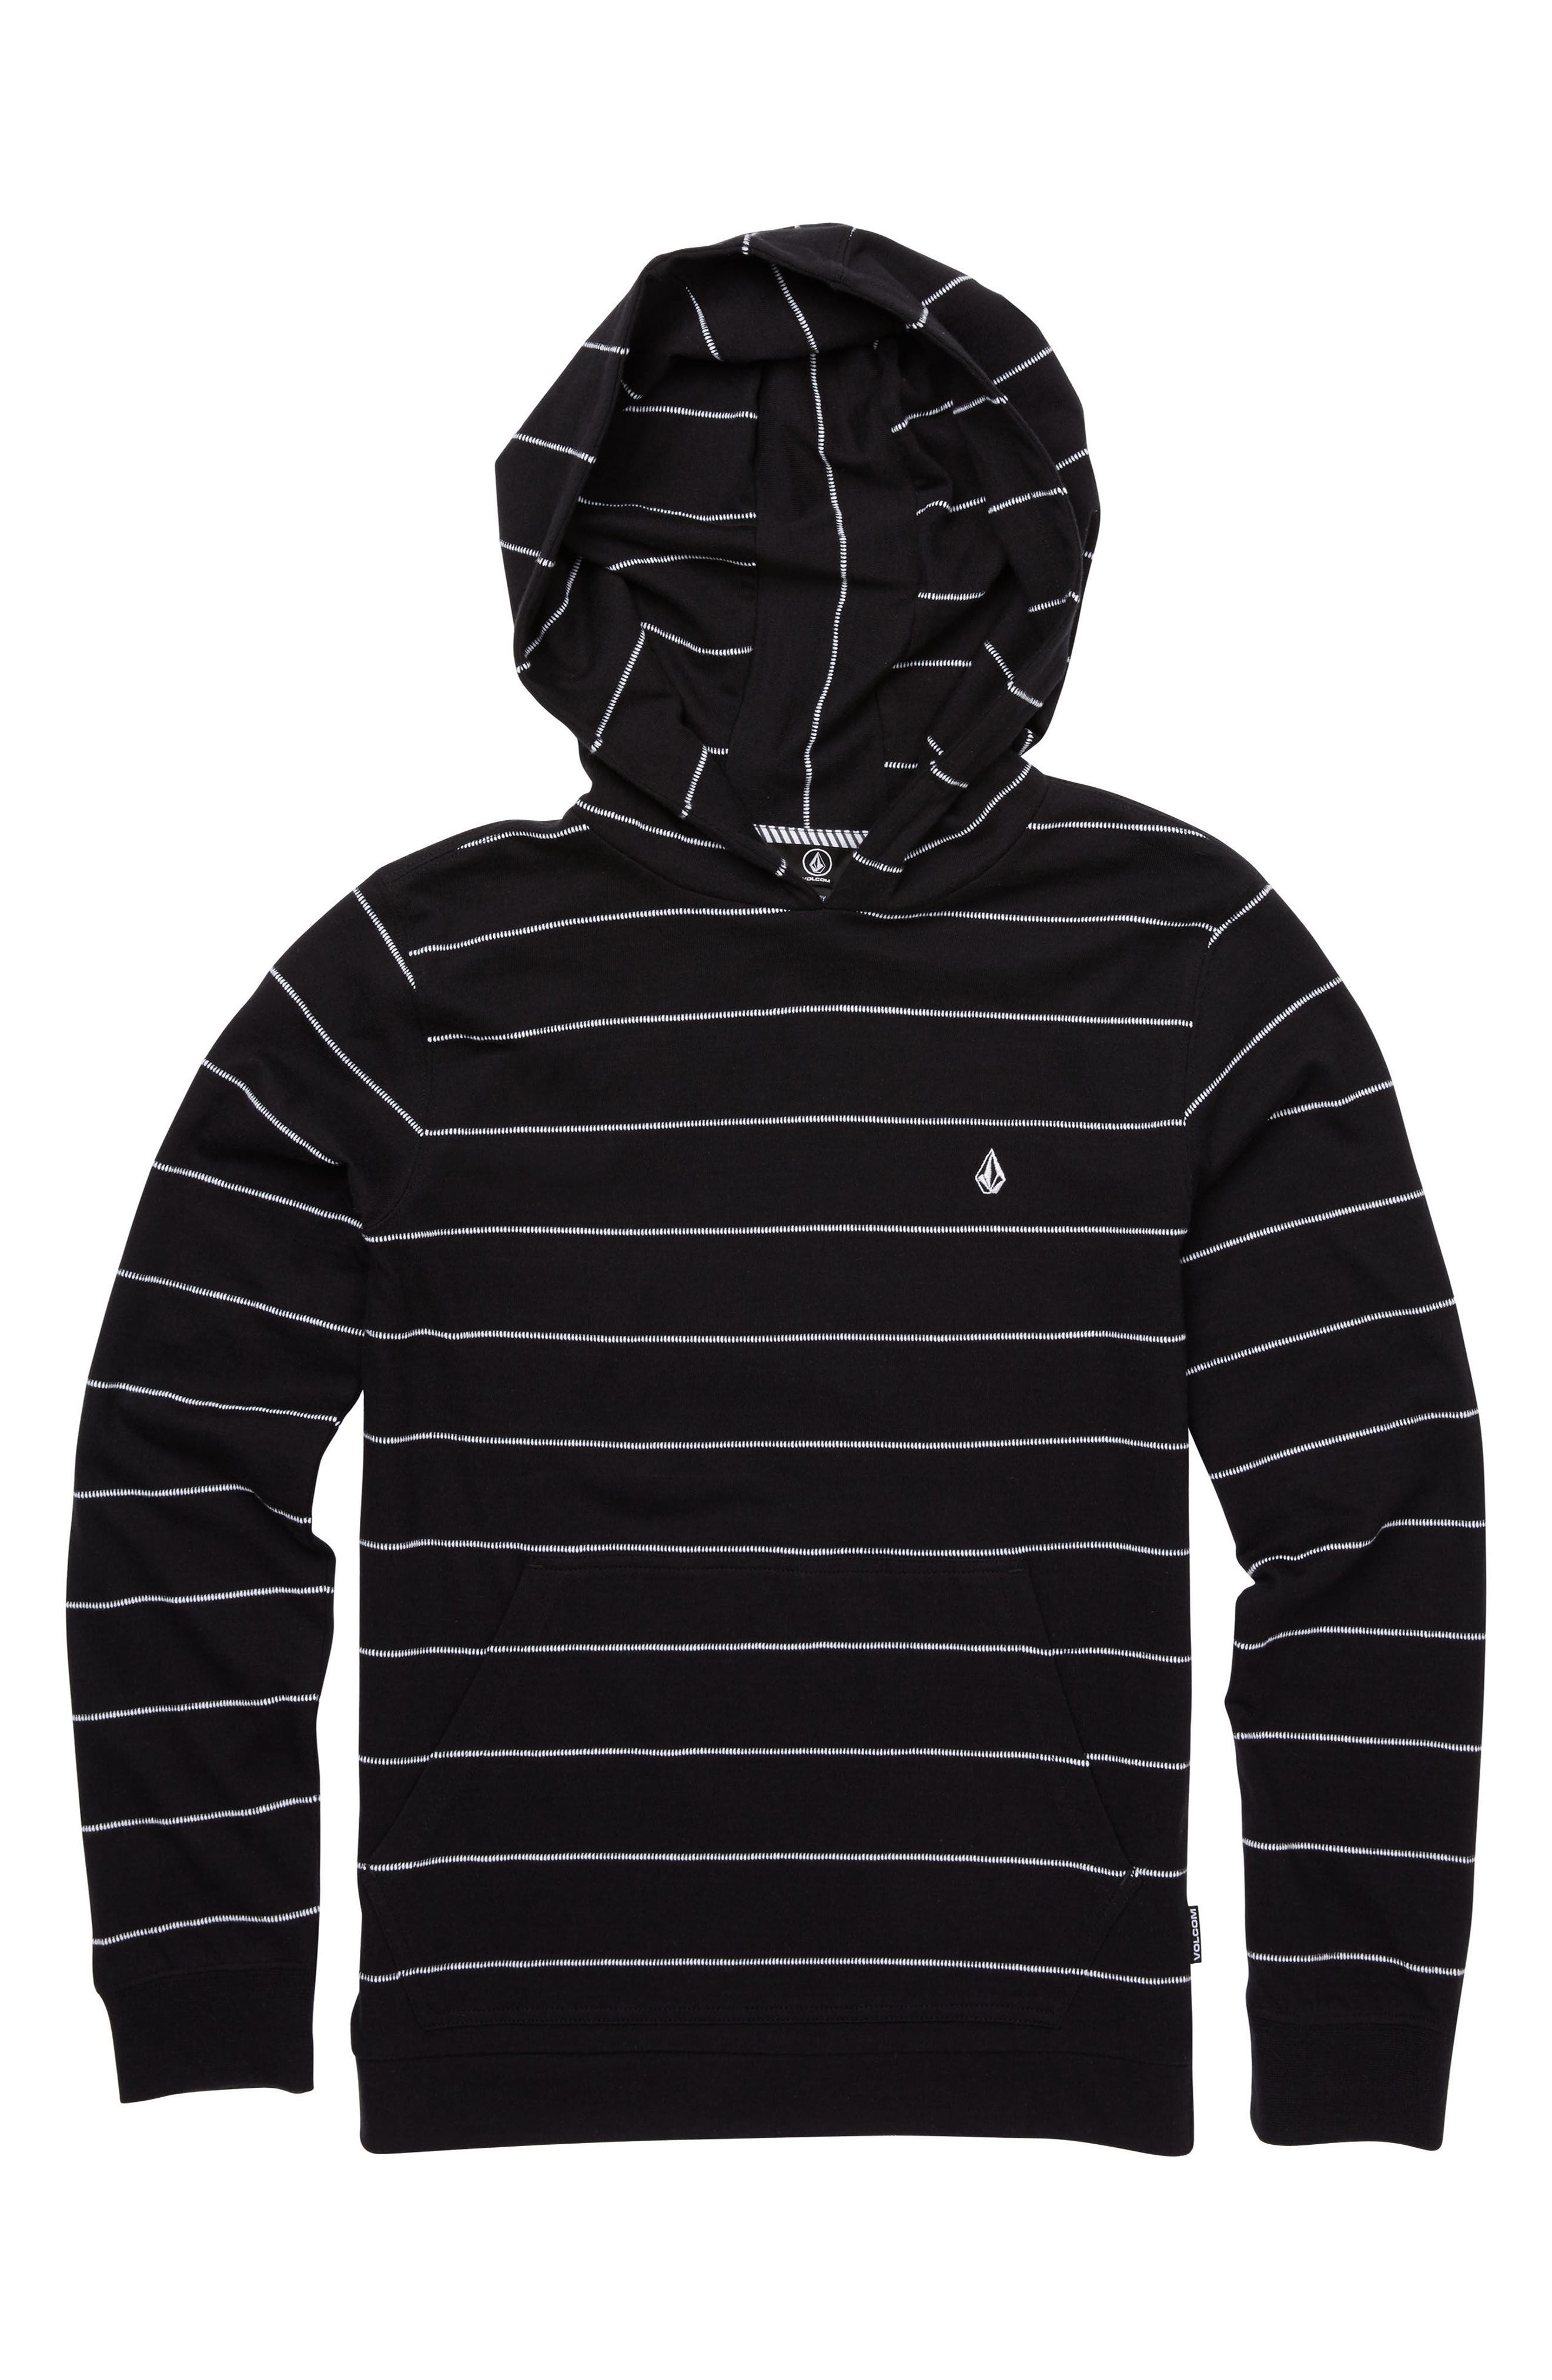 Wallace Hoodie,                         Main,                         color, 001